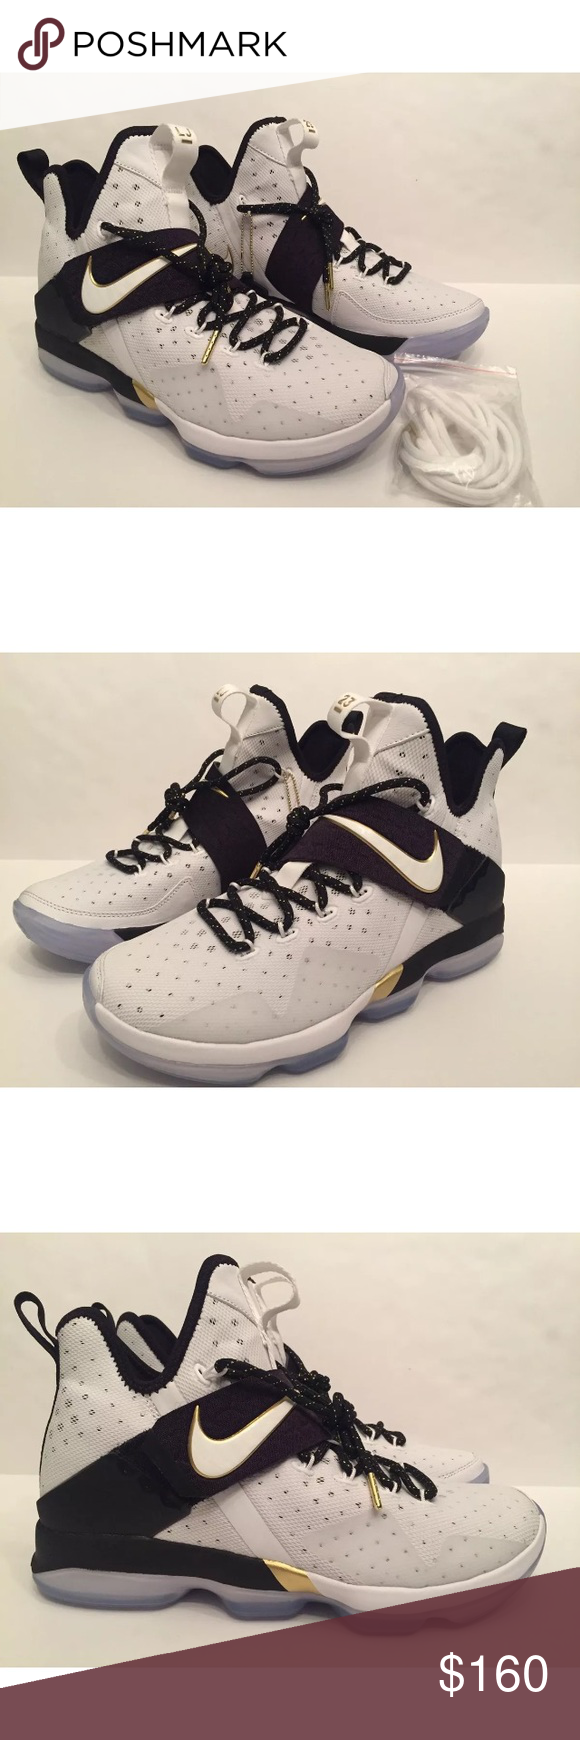 b766d00353620 NEW Nike Lebron 14 BHM 100% Authentic! Size 9.5 NEW (NEVER WORN ...